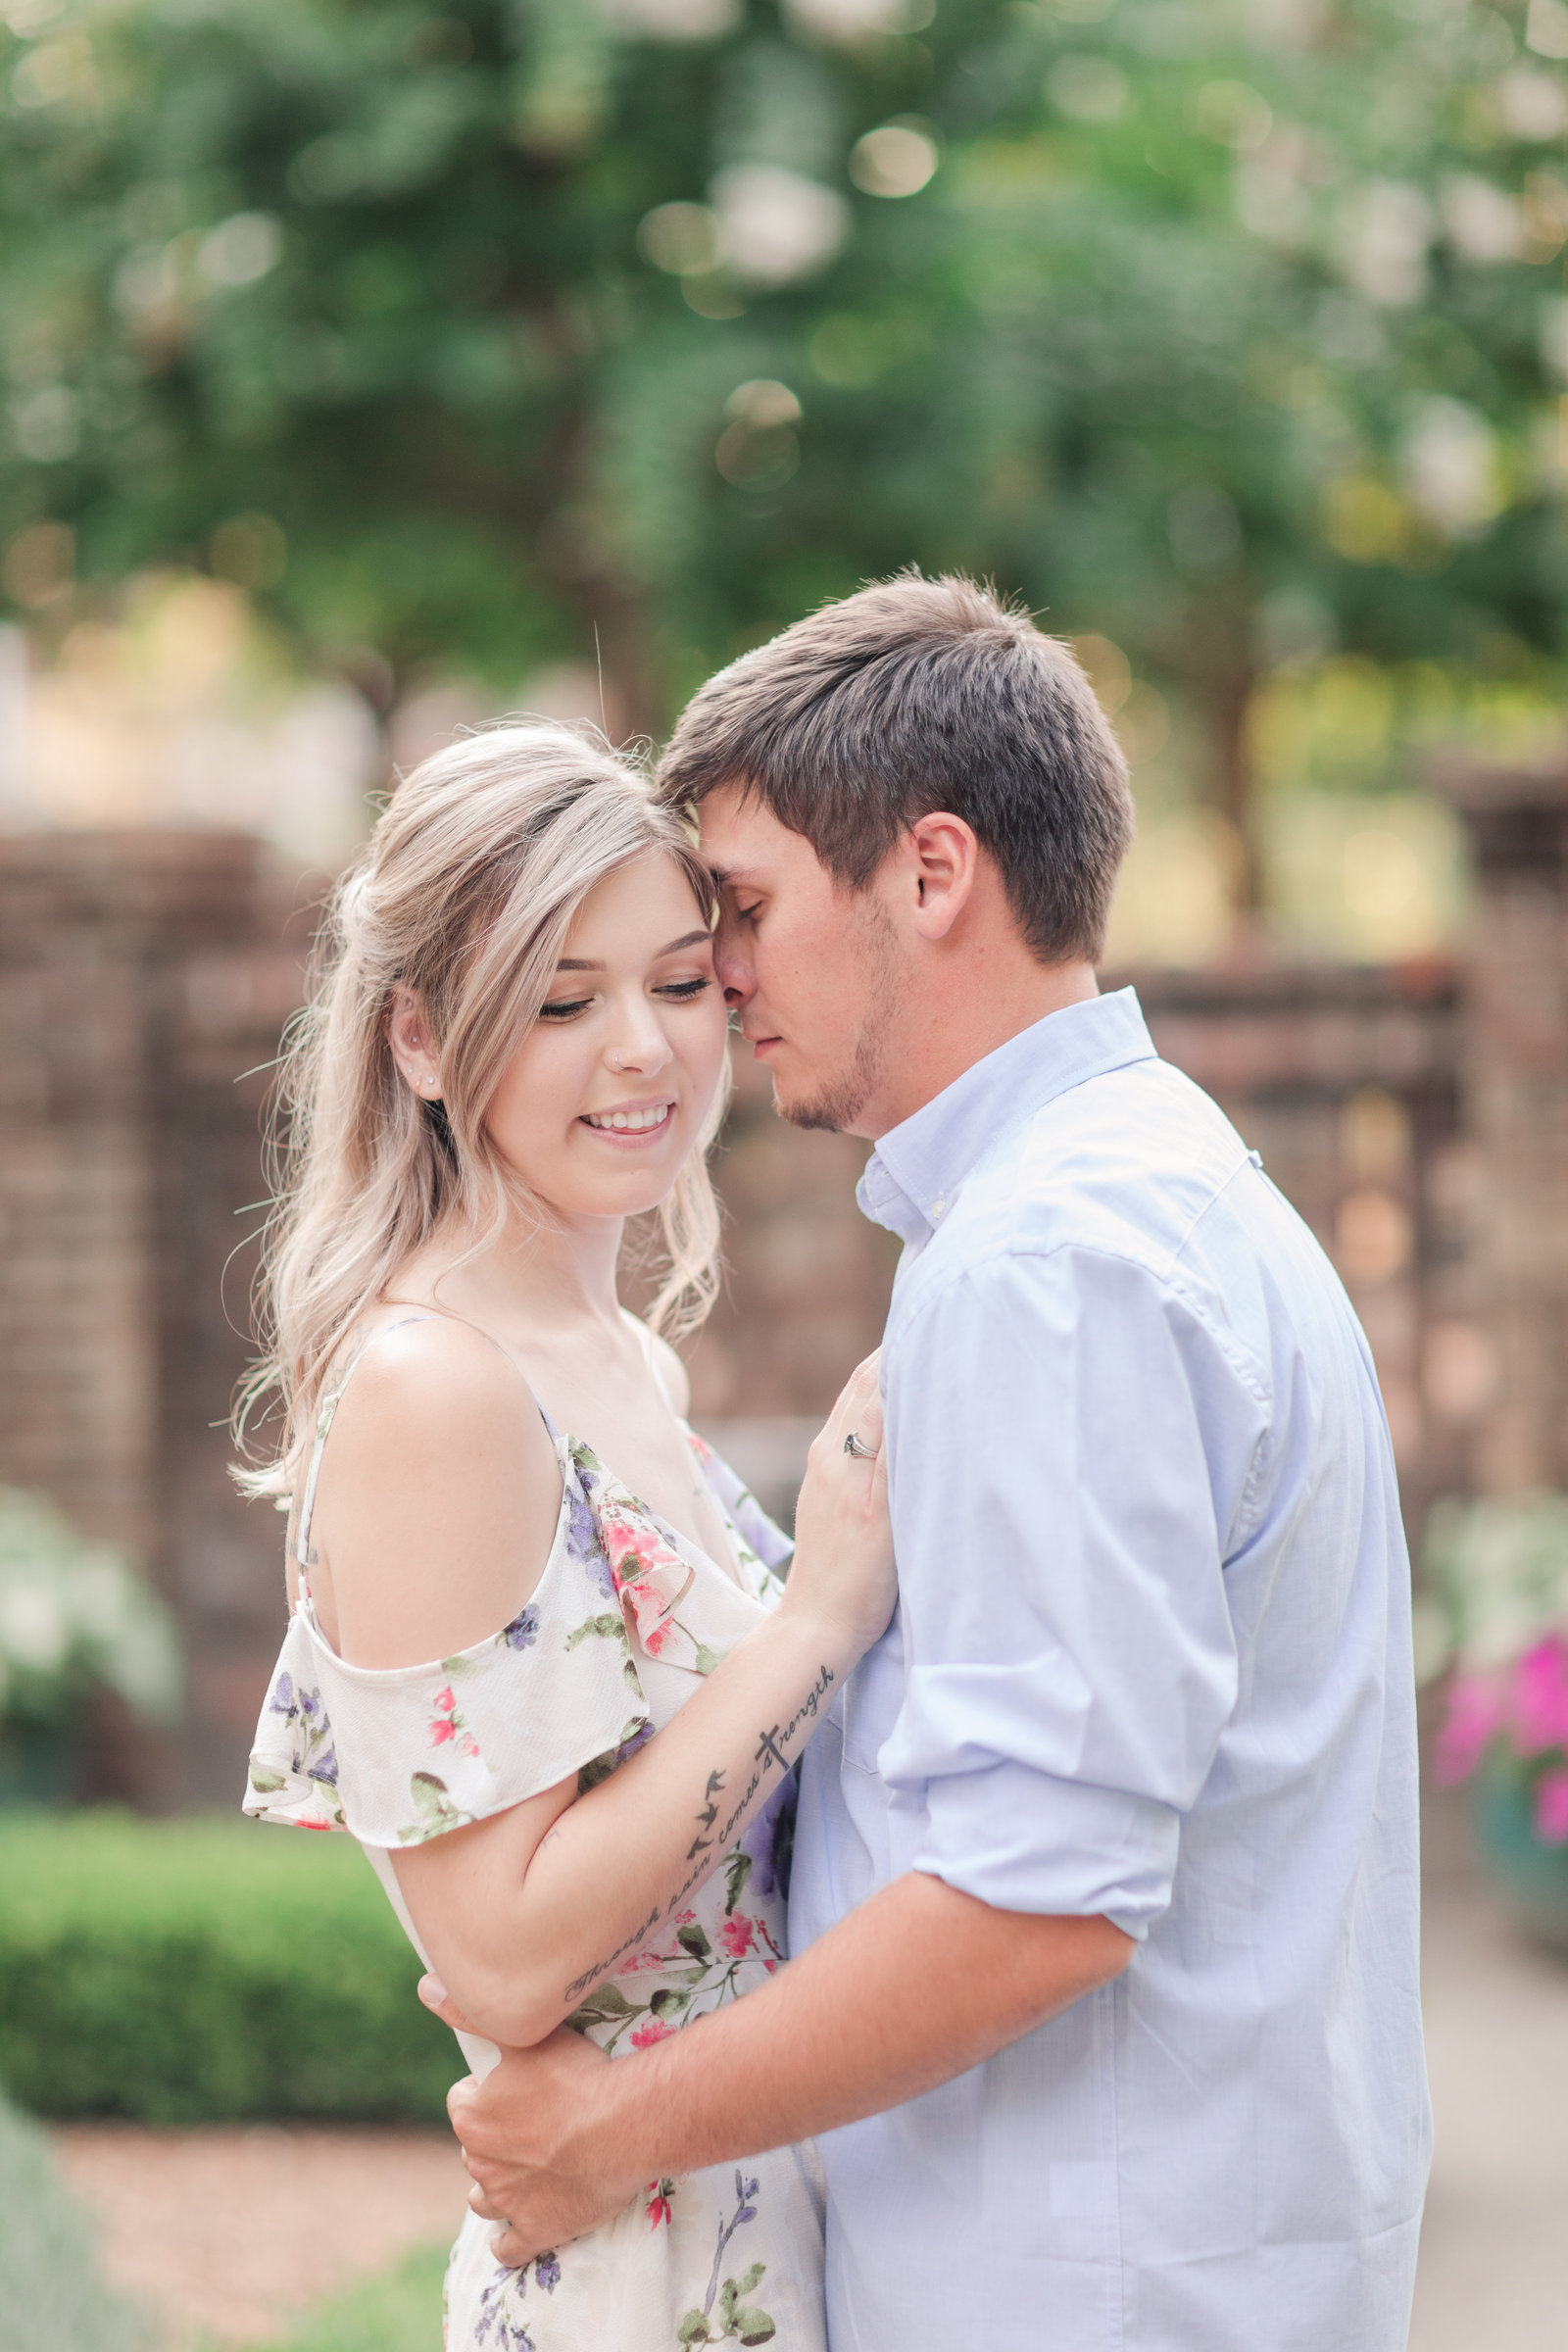 Jennifer B Photography-Sandhills Horticultural Gardens Engagement-Pinehurst NC-Cody and Kayla-2019-0133